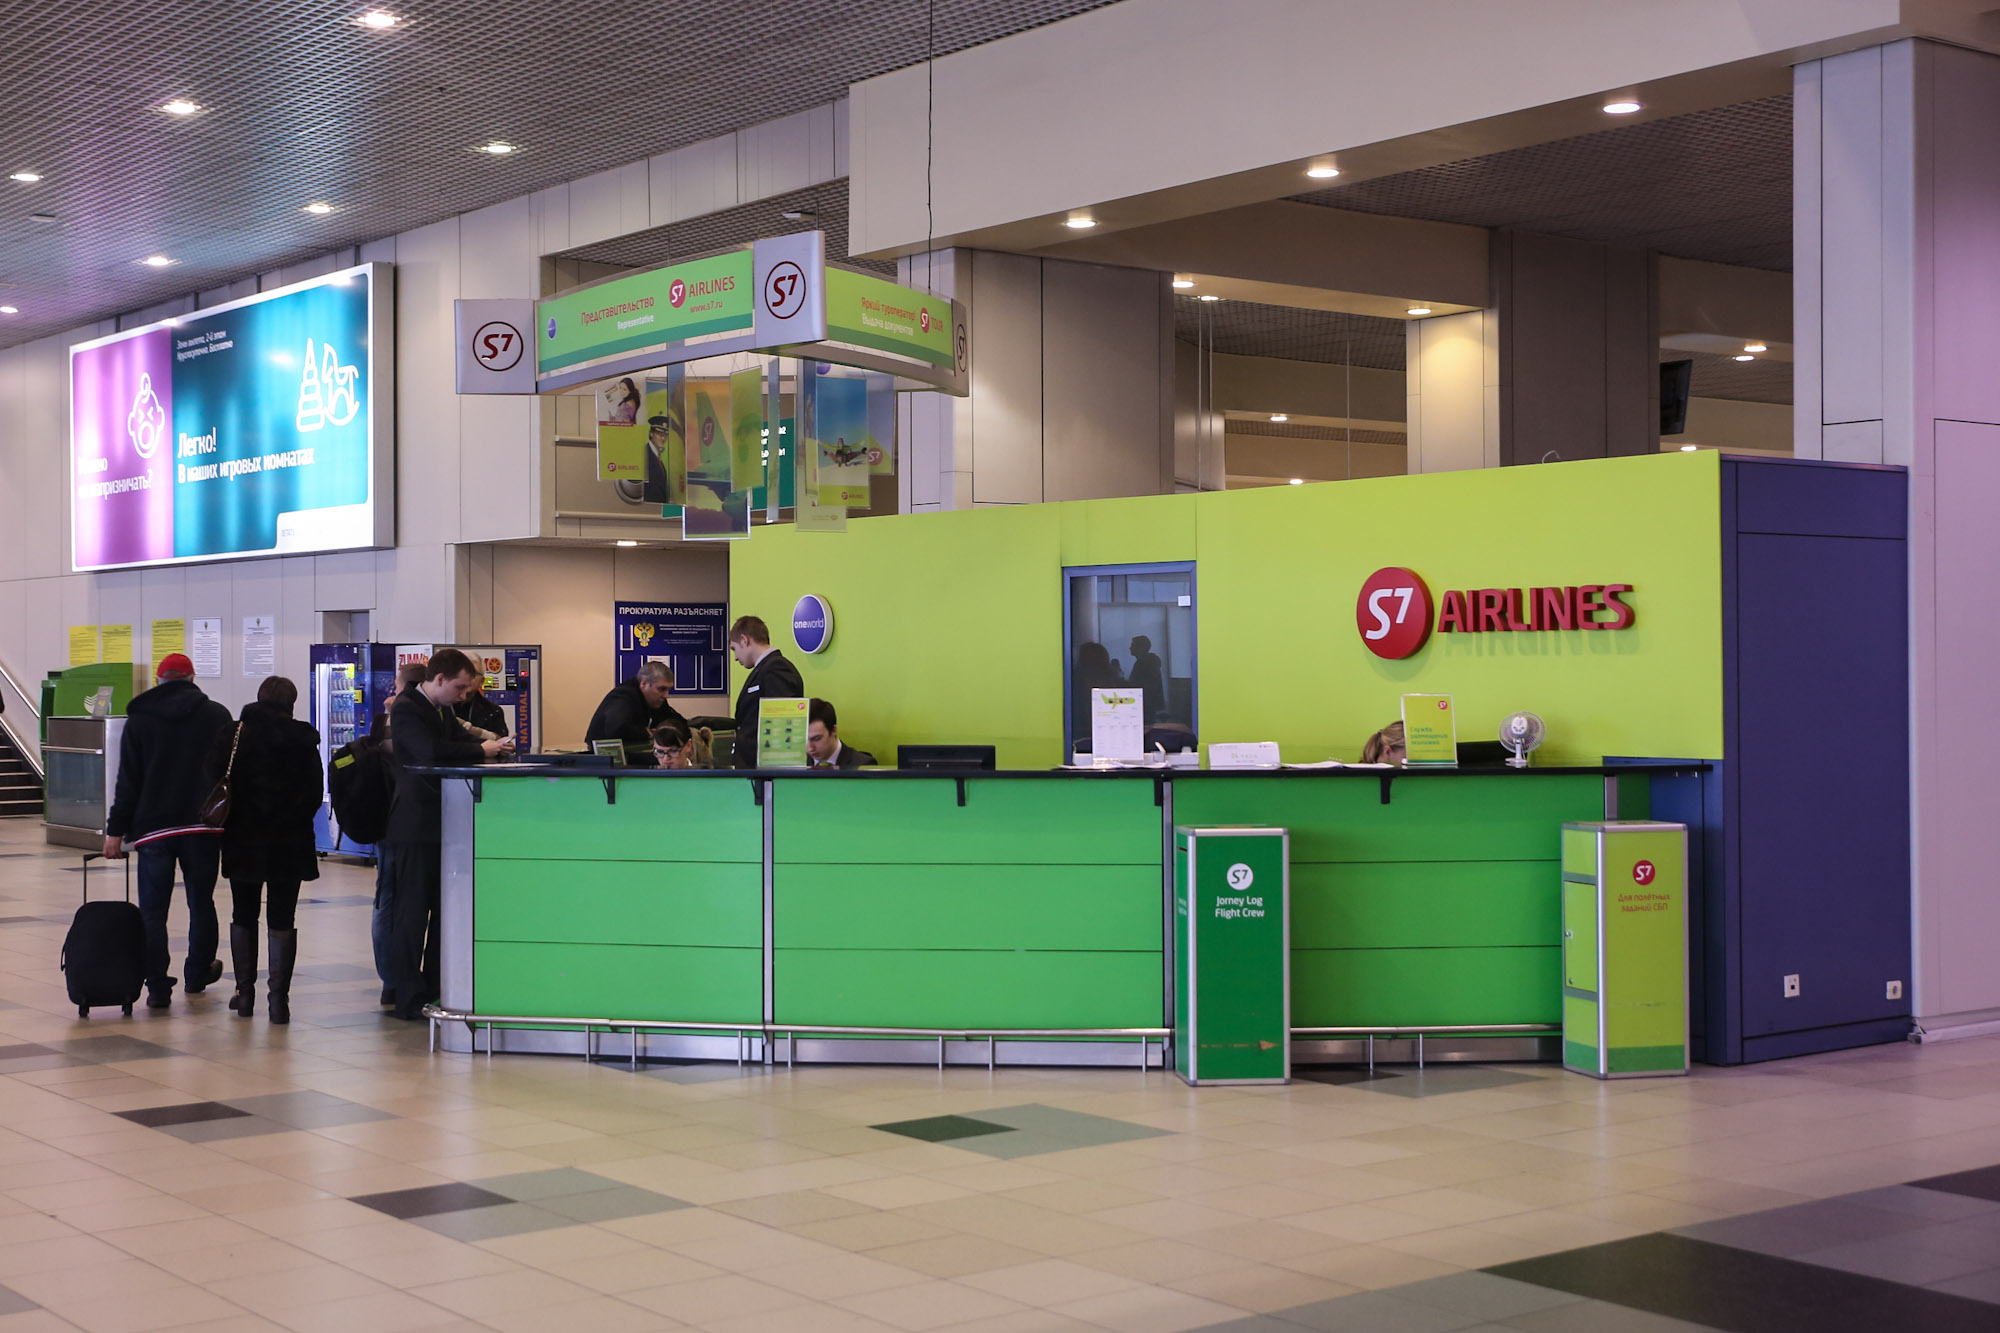 The representative office of S7 Airlines at Domodedovo airport